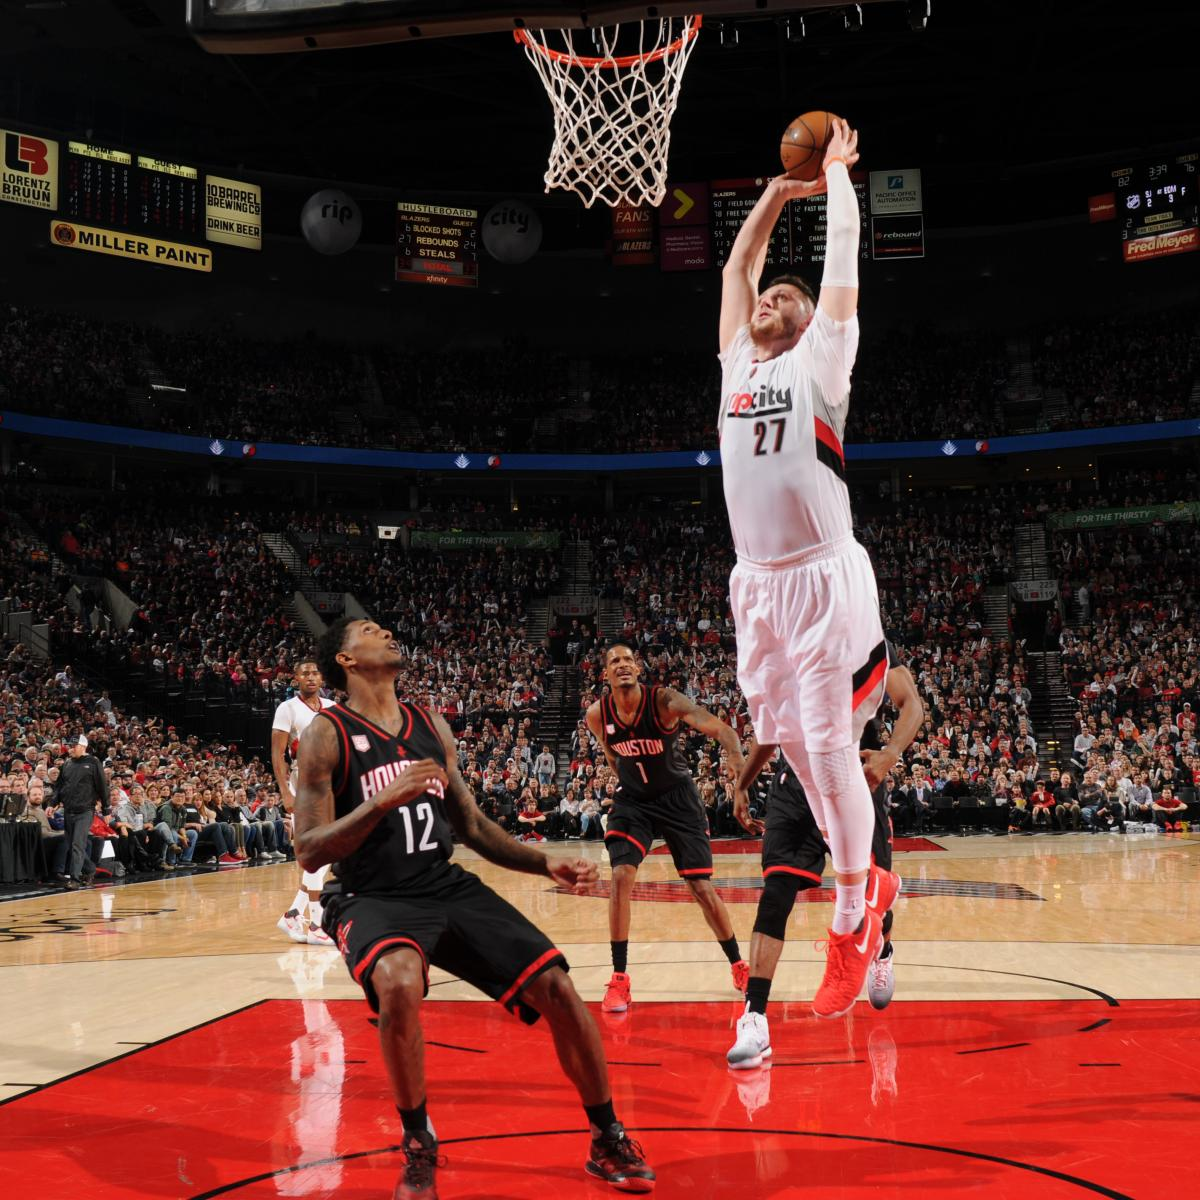 Blazers Injury Report: Jusuf Nurkic's Leg Injury Diagnosed As A Fracture, Out At